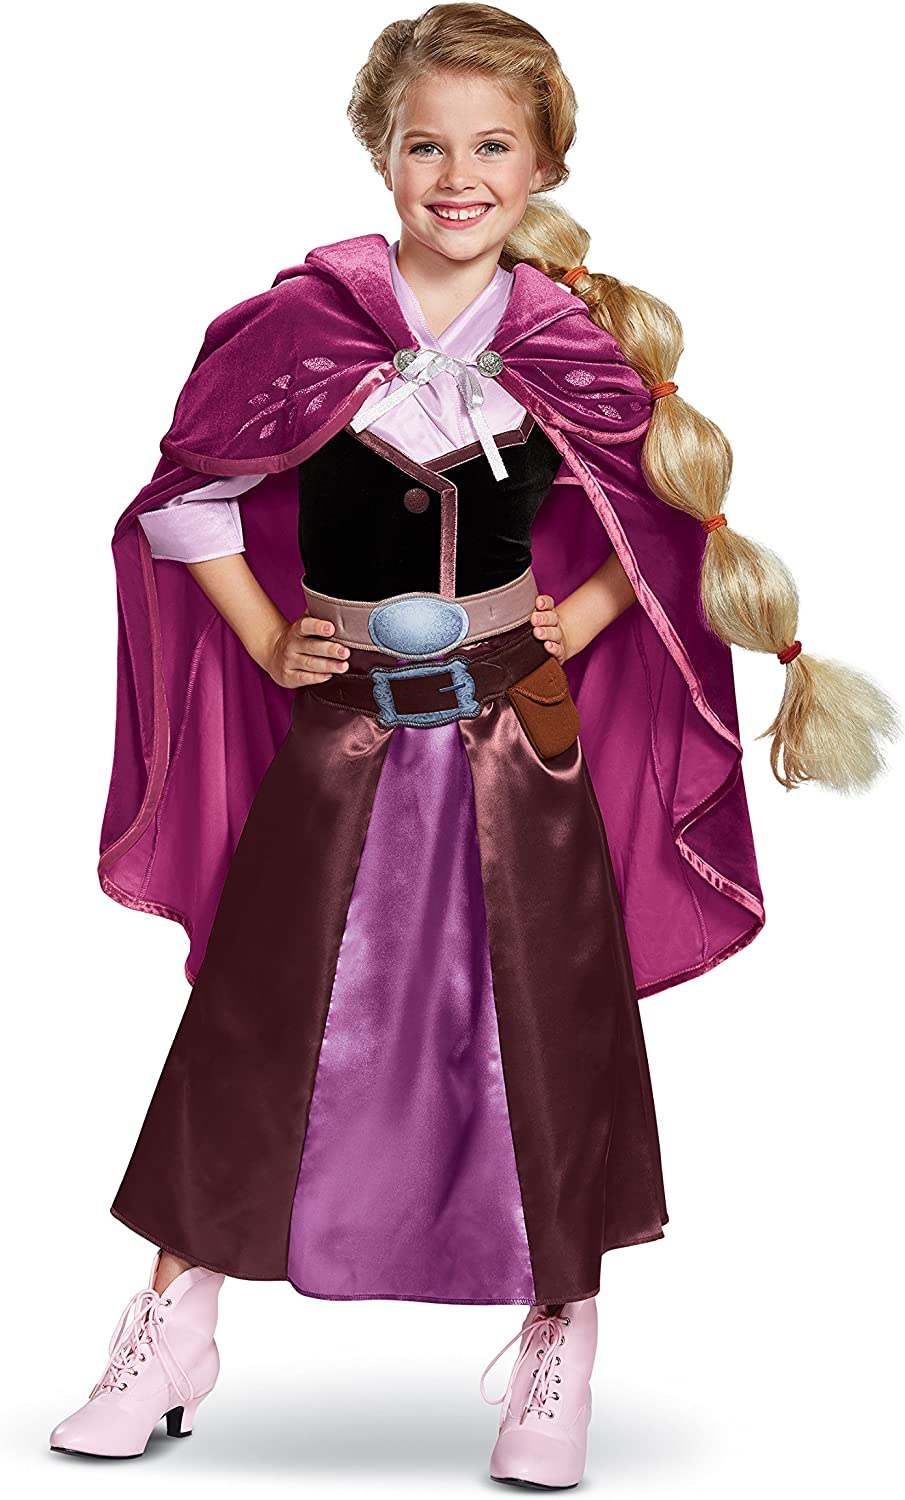 Tangled The Series Season 2 Deluxe Rapunzel Travel Outfit Costume for Toddlers